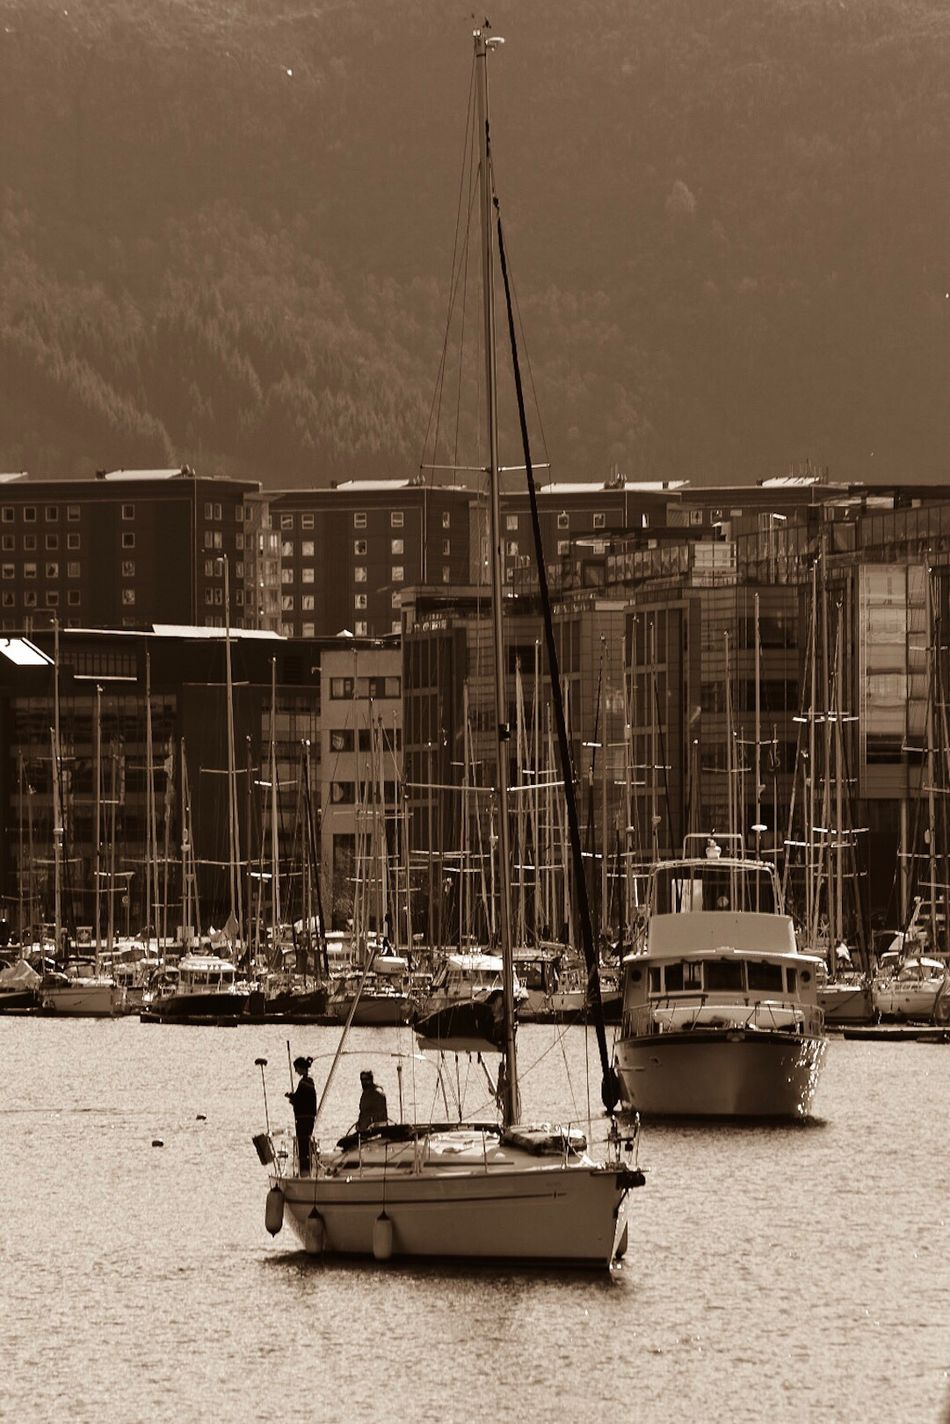 Transportation Architecture Water Built Structure Nautical Vessel Waterfront River Mode Of Transport Building Exterior Outdoors Day Sky Nature No People Awsome Stunning_shots Low Angle View Bergen Architecture The Way Forward The One NumberOne